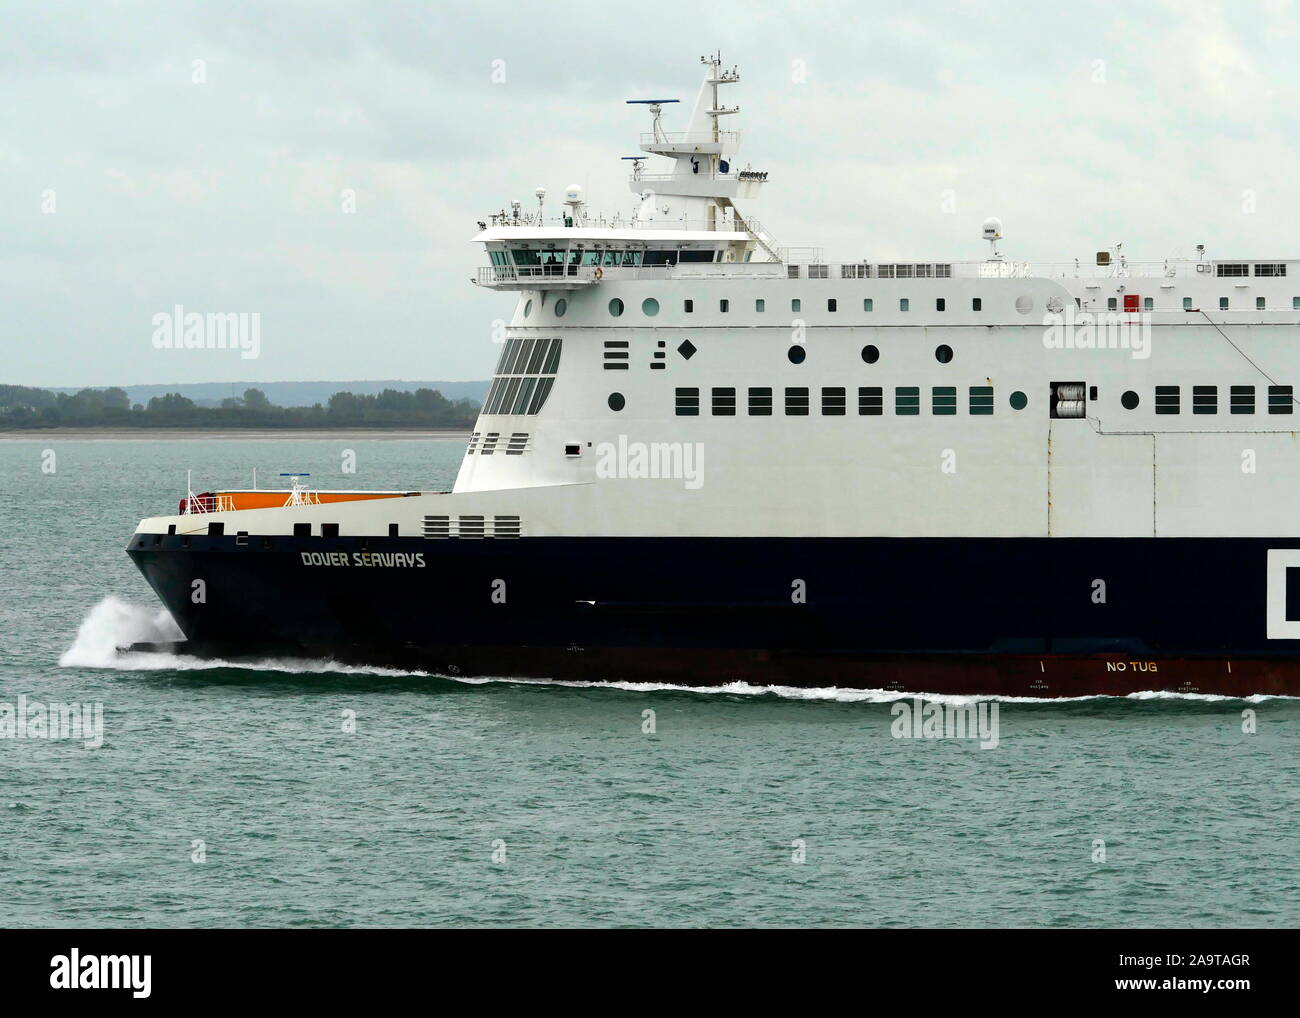 AJAXNETPHOTO. 15TH OCTOBER, 2019. CHANNEL, ENGLAND.- CROSS CHANNEL CAR AND PASSENGER FERRY DFDS DOVER SEAWAYS ON PASSAGE TO DUNKERQUE.PHOTO:JONATHAN EASTLAND/AJAX REF:GX8 191510 20932 Stock Photo